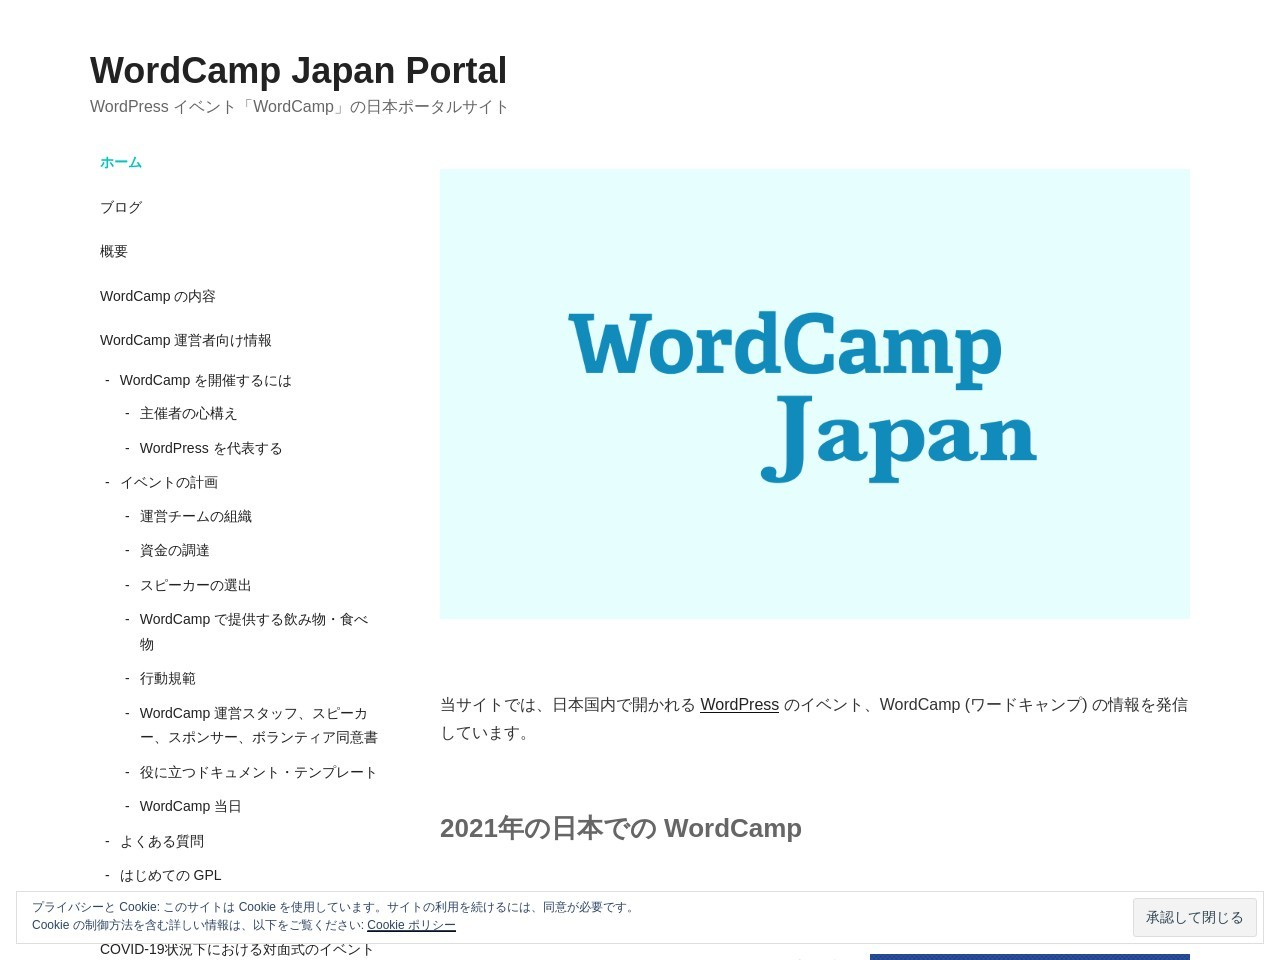 https://japan.wordcamp.org/for-organizers/planning-details/speakers/